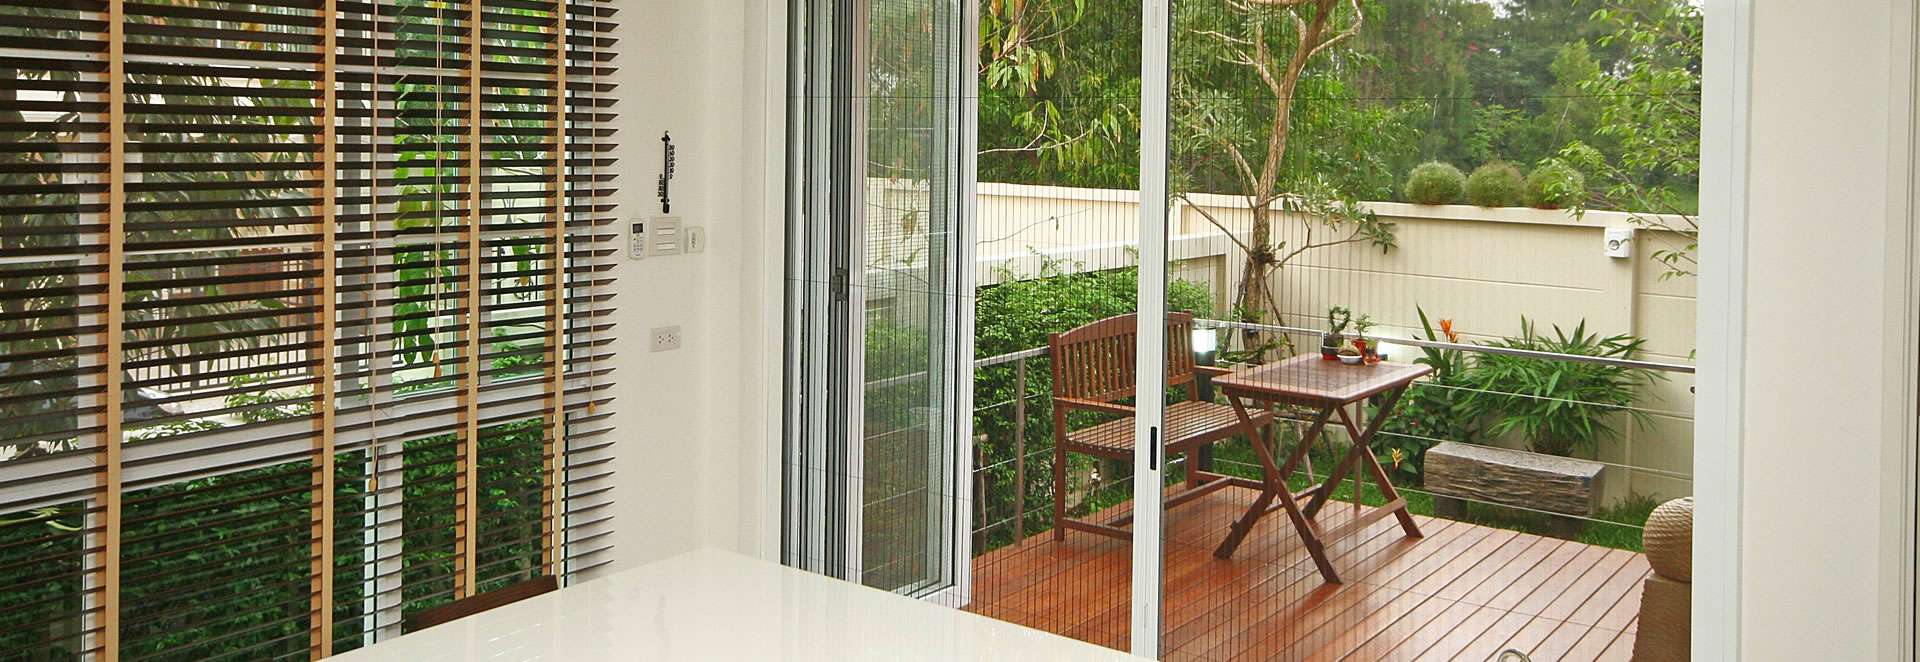 retractable screen to outdoor verandah